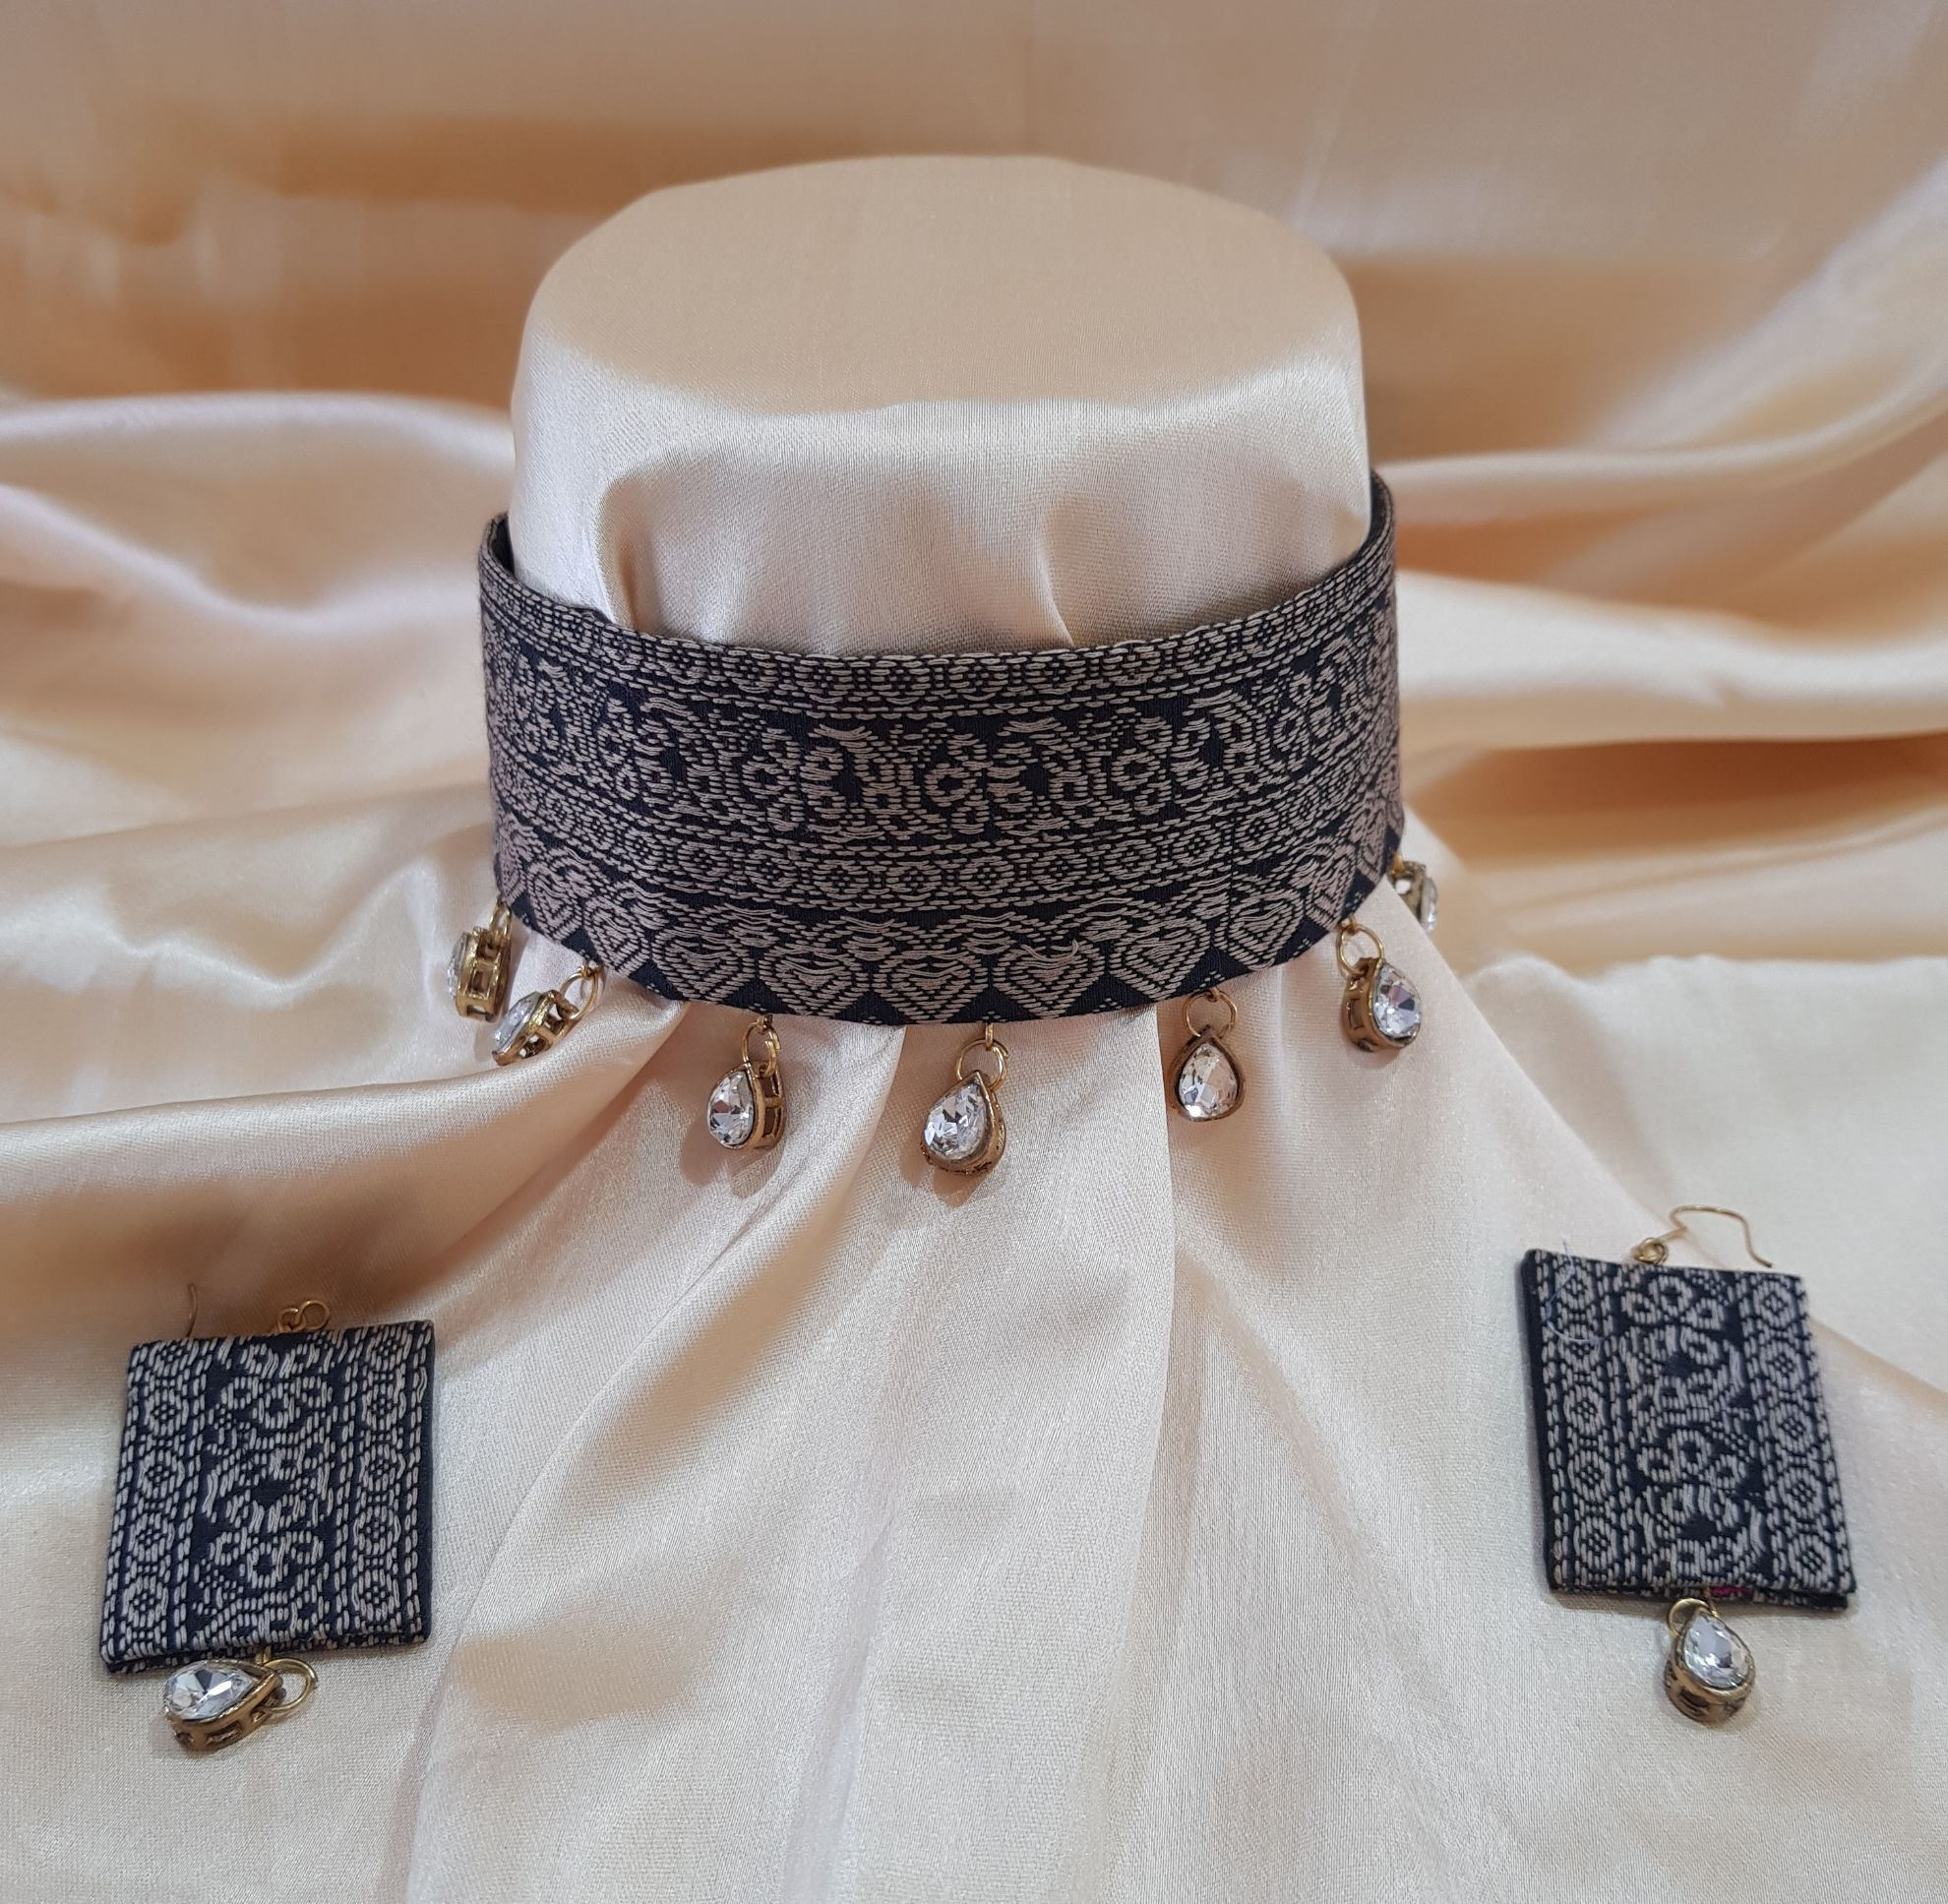 Handcrafted Ikat Fabric Jewellery Choker Set Black : Picture